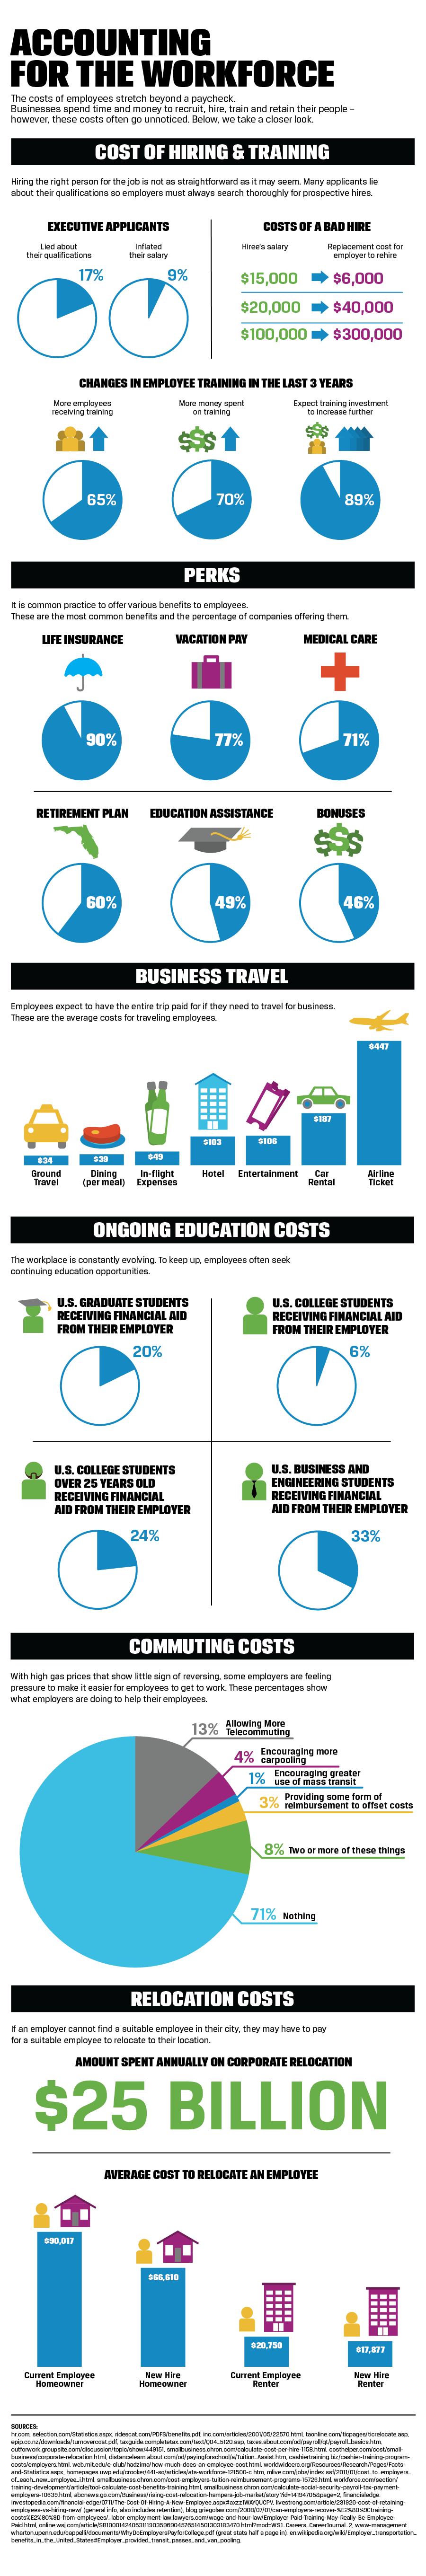 Infographic of costs of employees beyond paychecks such as hiring and training, perks, travel, education, commuting